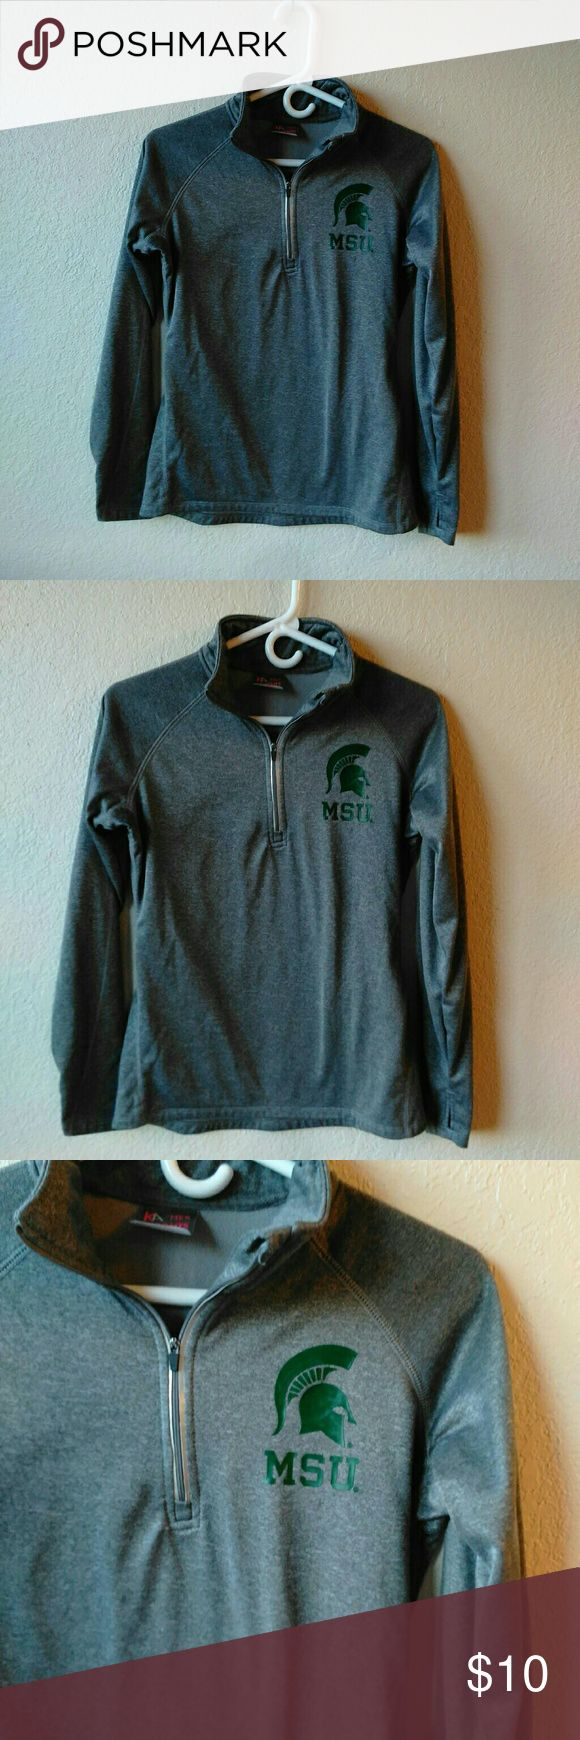 Knights Apparel for Her Spartan's Top MSU Gray Top.  Long Sleeve.  Well made.  Size Small Knights Apparel Tops